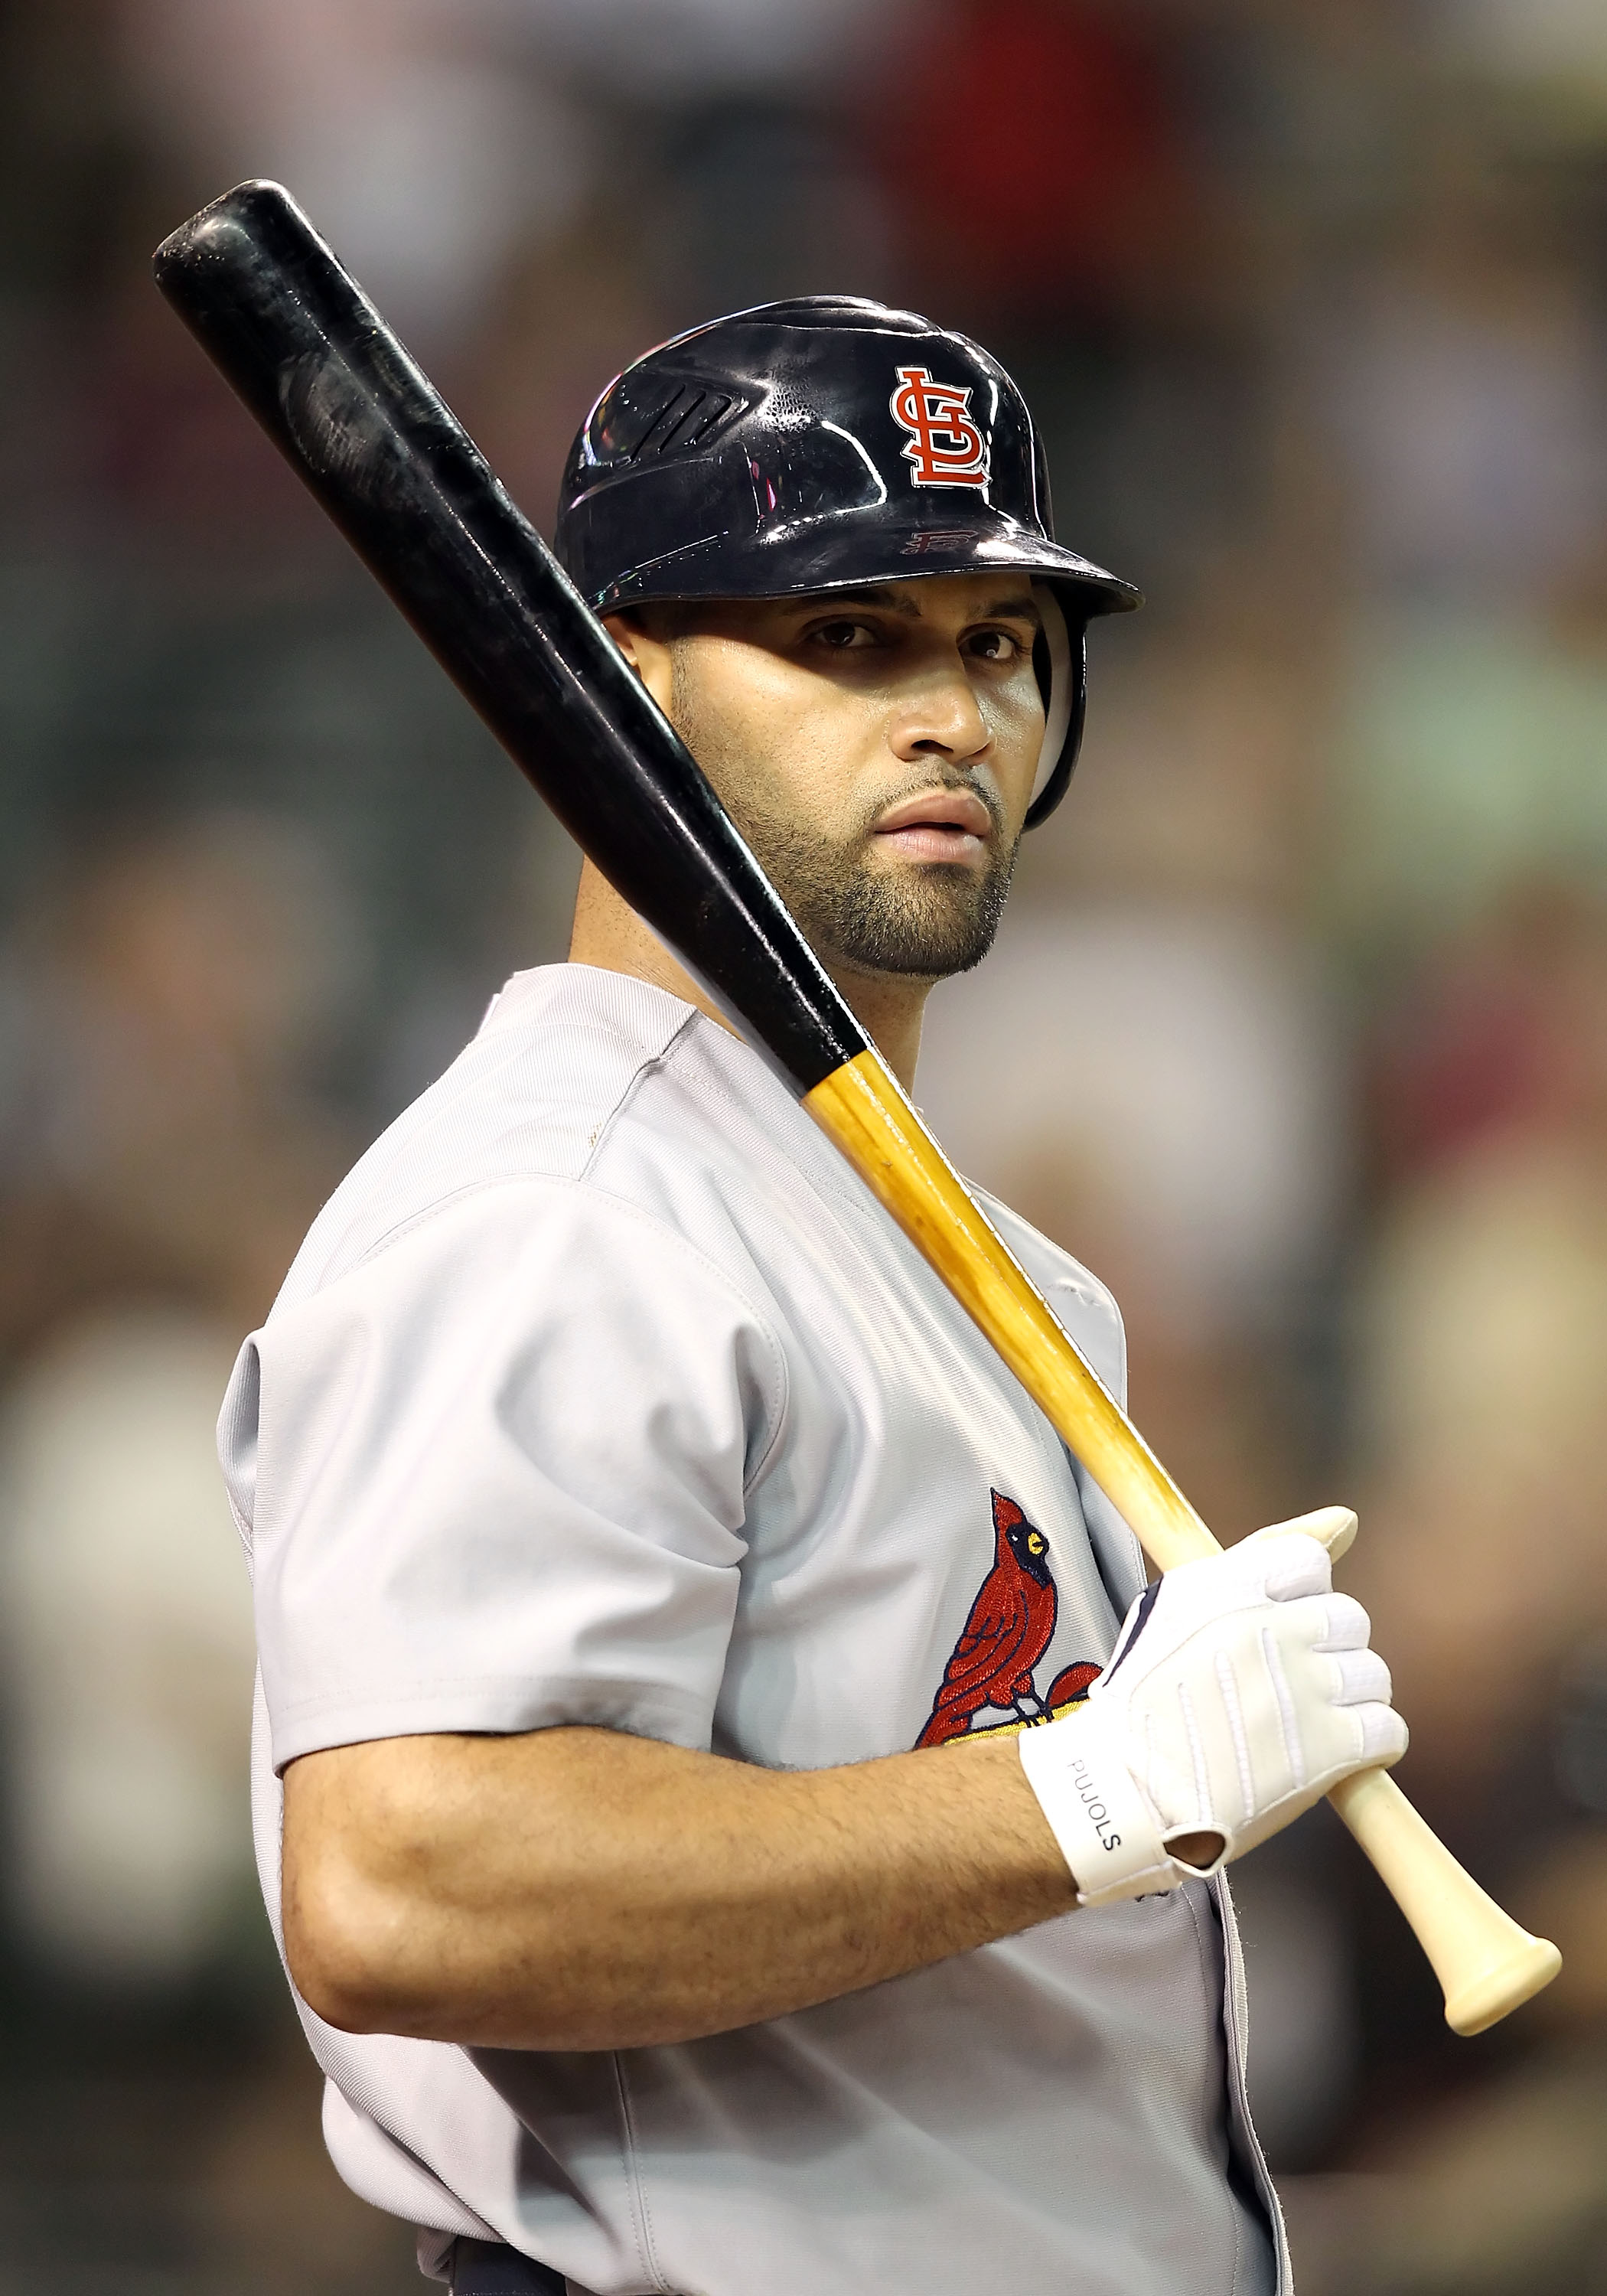 PHOENIX - JUNE 11:  Albert Pujols #4 of the St. Louis Cardinals prepares to bat against the Arizona Diamondbacks during the Major League Baseball game at Chase Field on June 11, 2010 in Phoenix, Arizona.  (Photo by Christian Petersen/Getty Images)